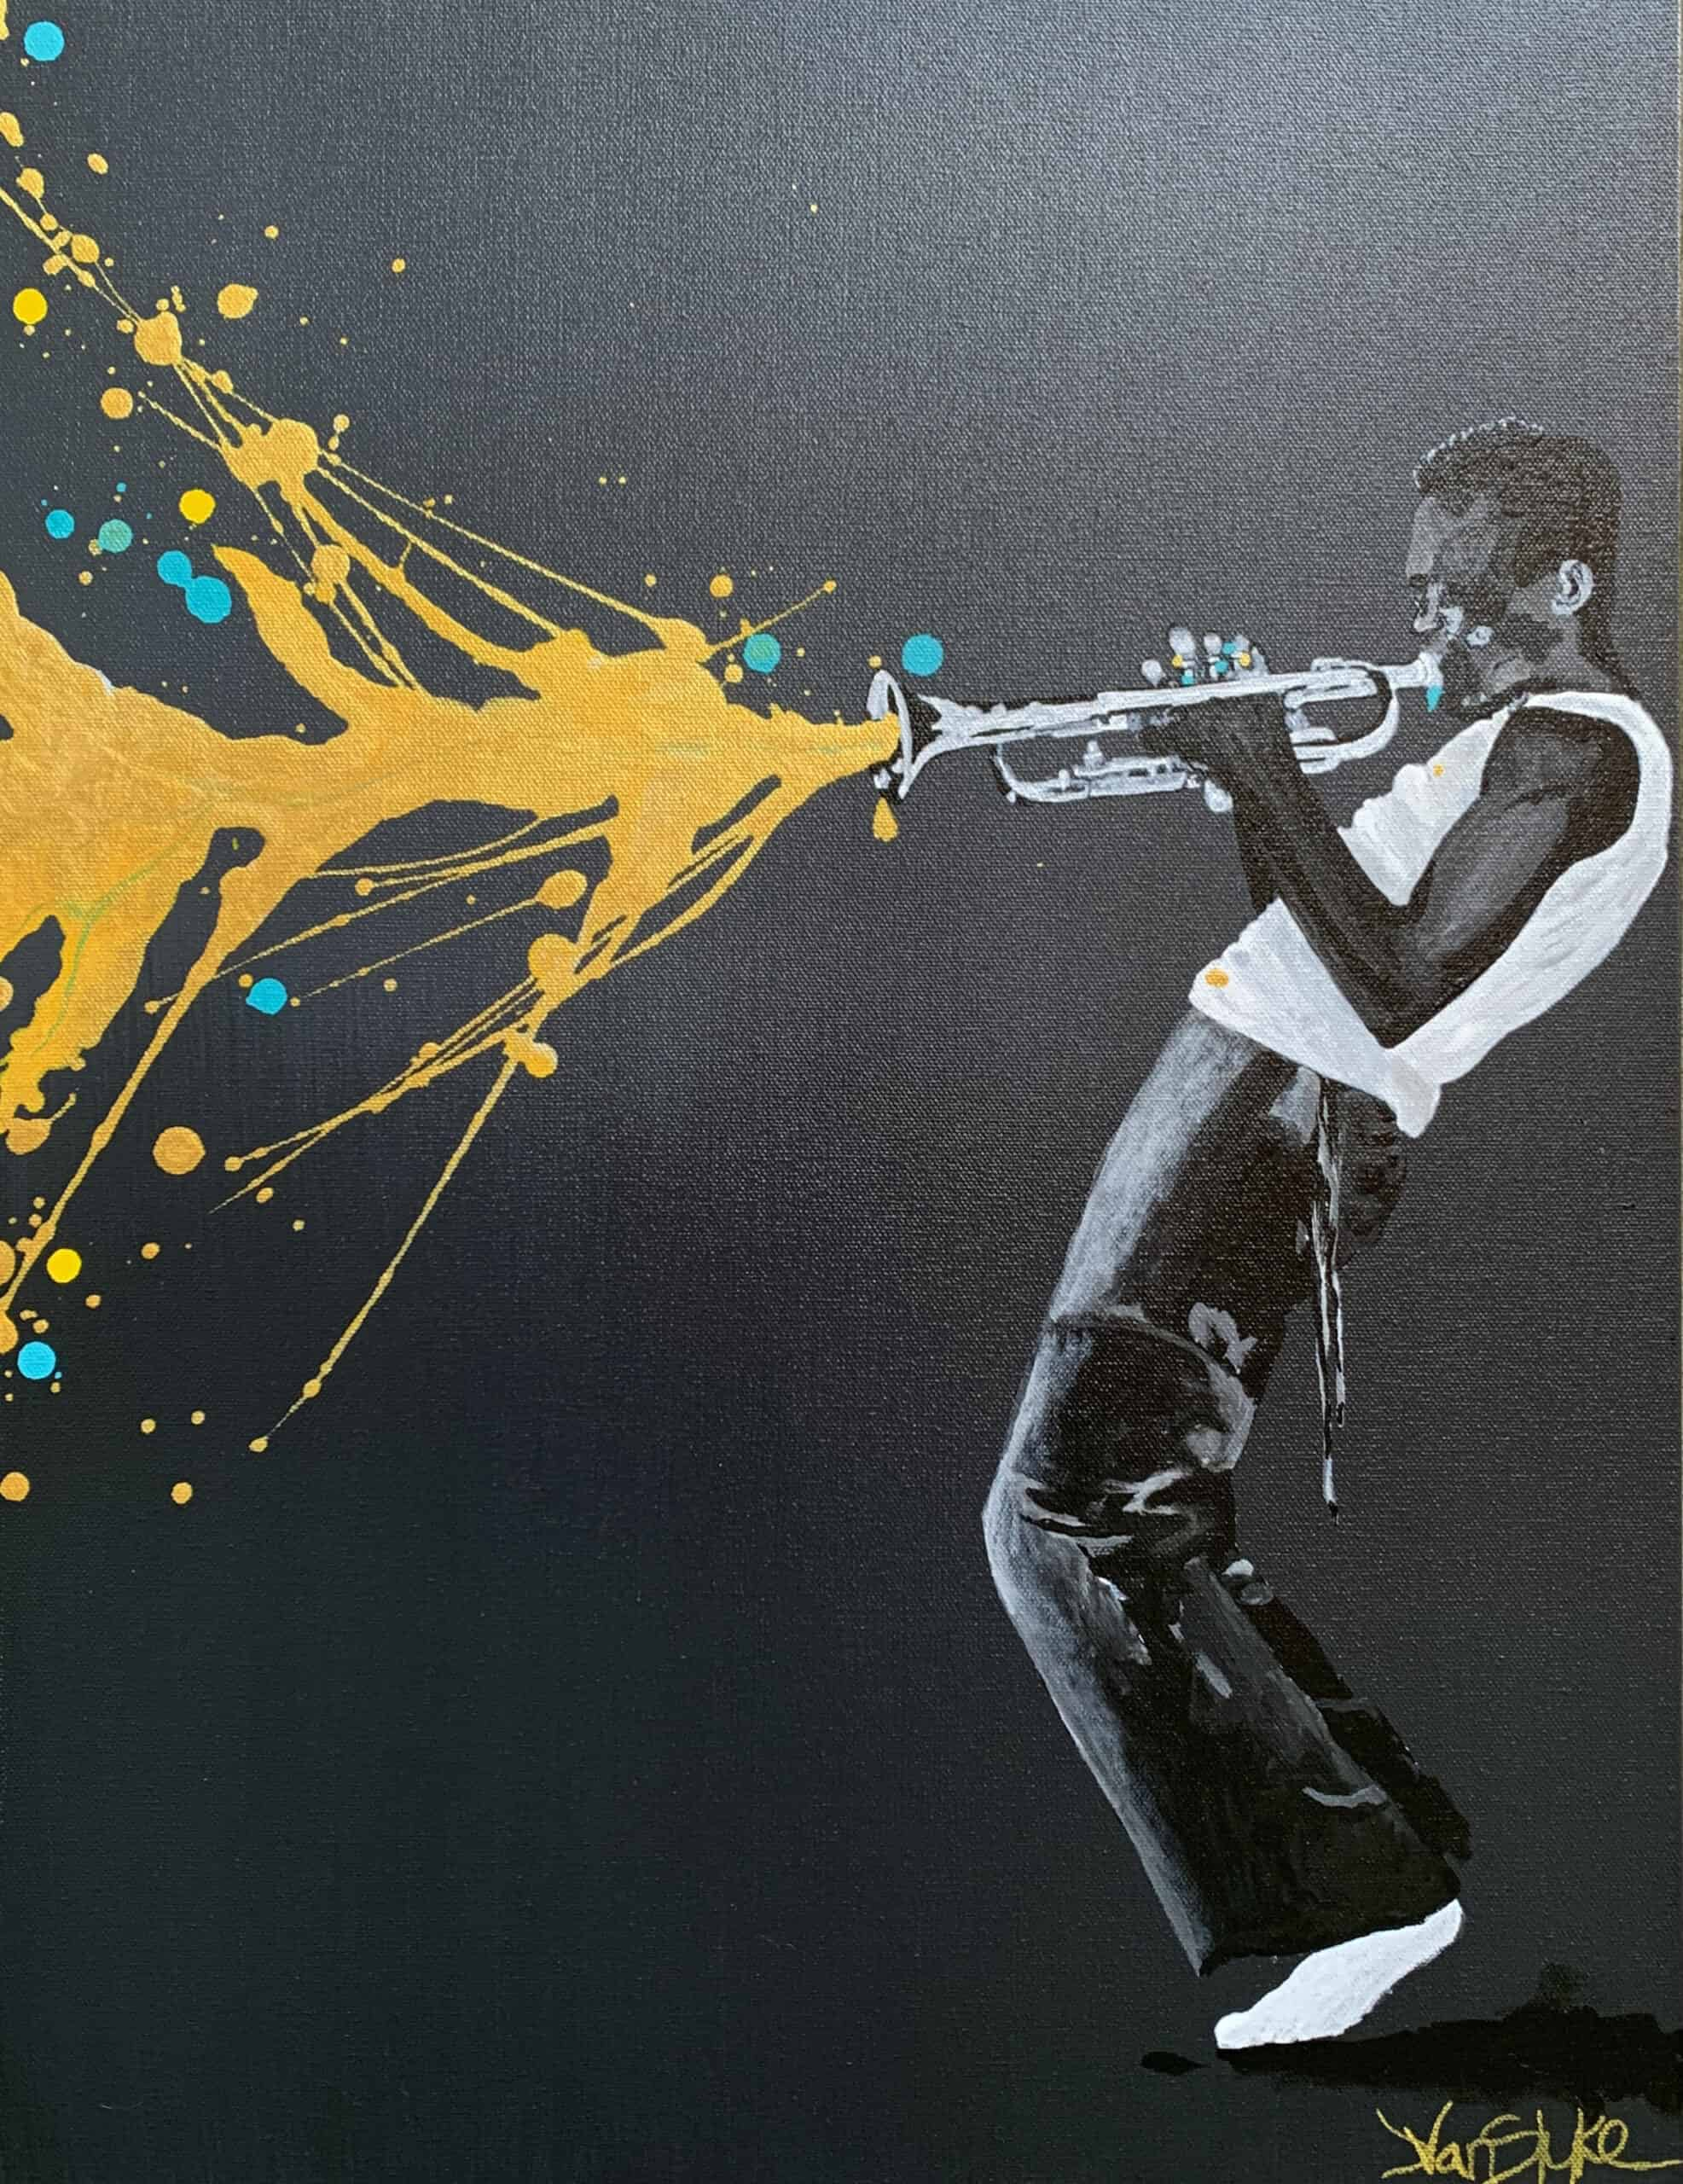 When your back is against the wall, turn your shine on (Miles Davis)